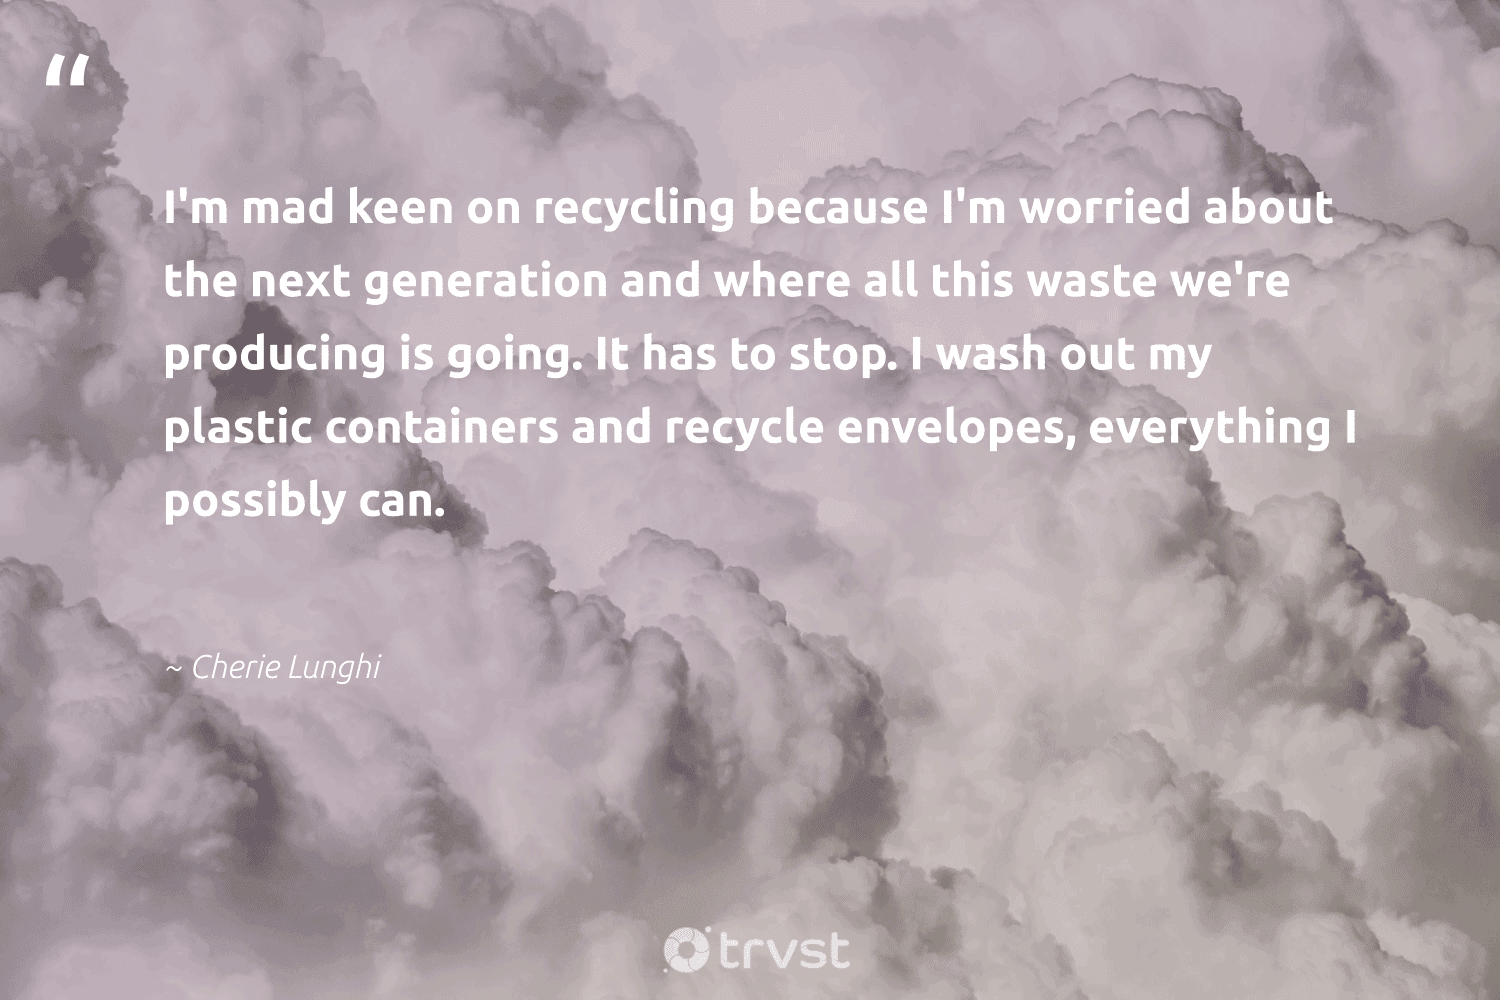 """""""I'm mad keen on recycling because I'm worried about the next generation and where all this waste we're producing is going. It has to stop. I wash out my plastic containers and recycle envelopes, everything I possibly can.""""  - Cherie Lunghi #trvst #quotes #recycling #waste #plastic #recycle #reducereuserecycle #saynotoplastic #gogreen #dogood #planetearthfirst #upcycling"""